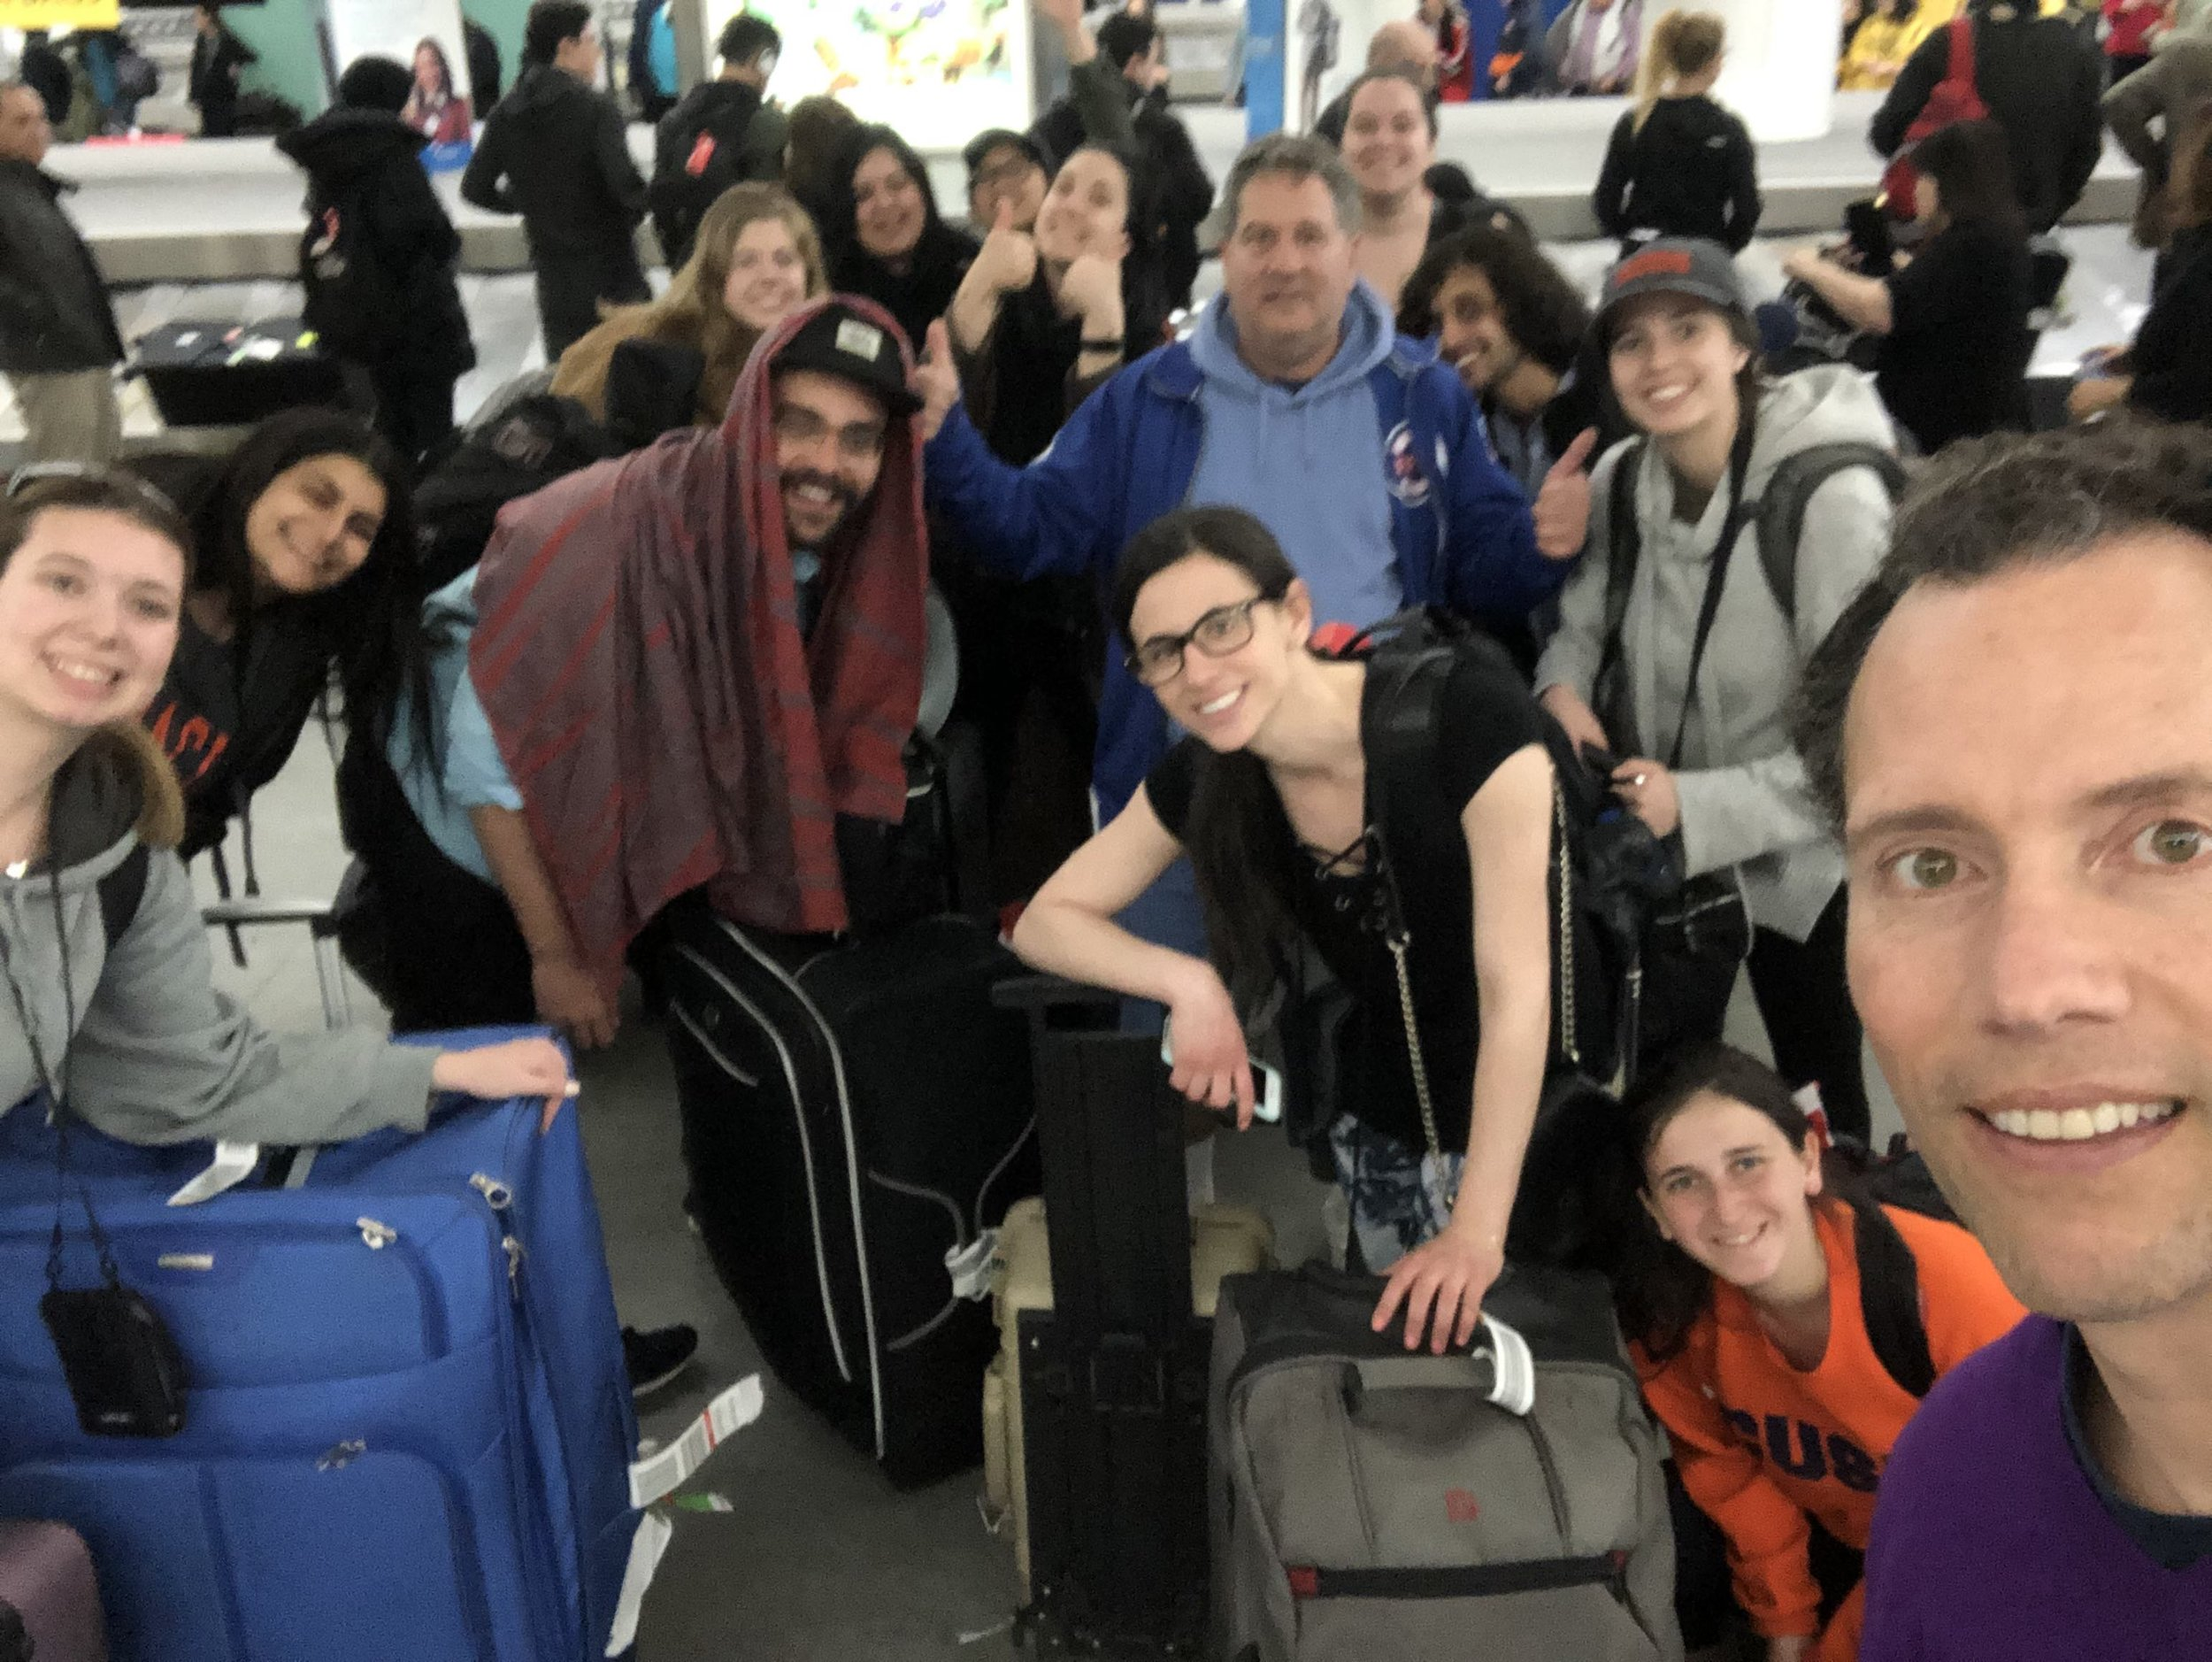 Arrived to JFK a little bleary (blurry)-eyed.